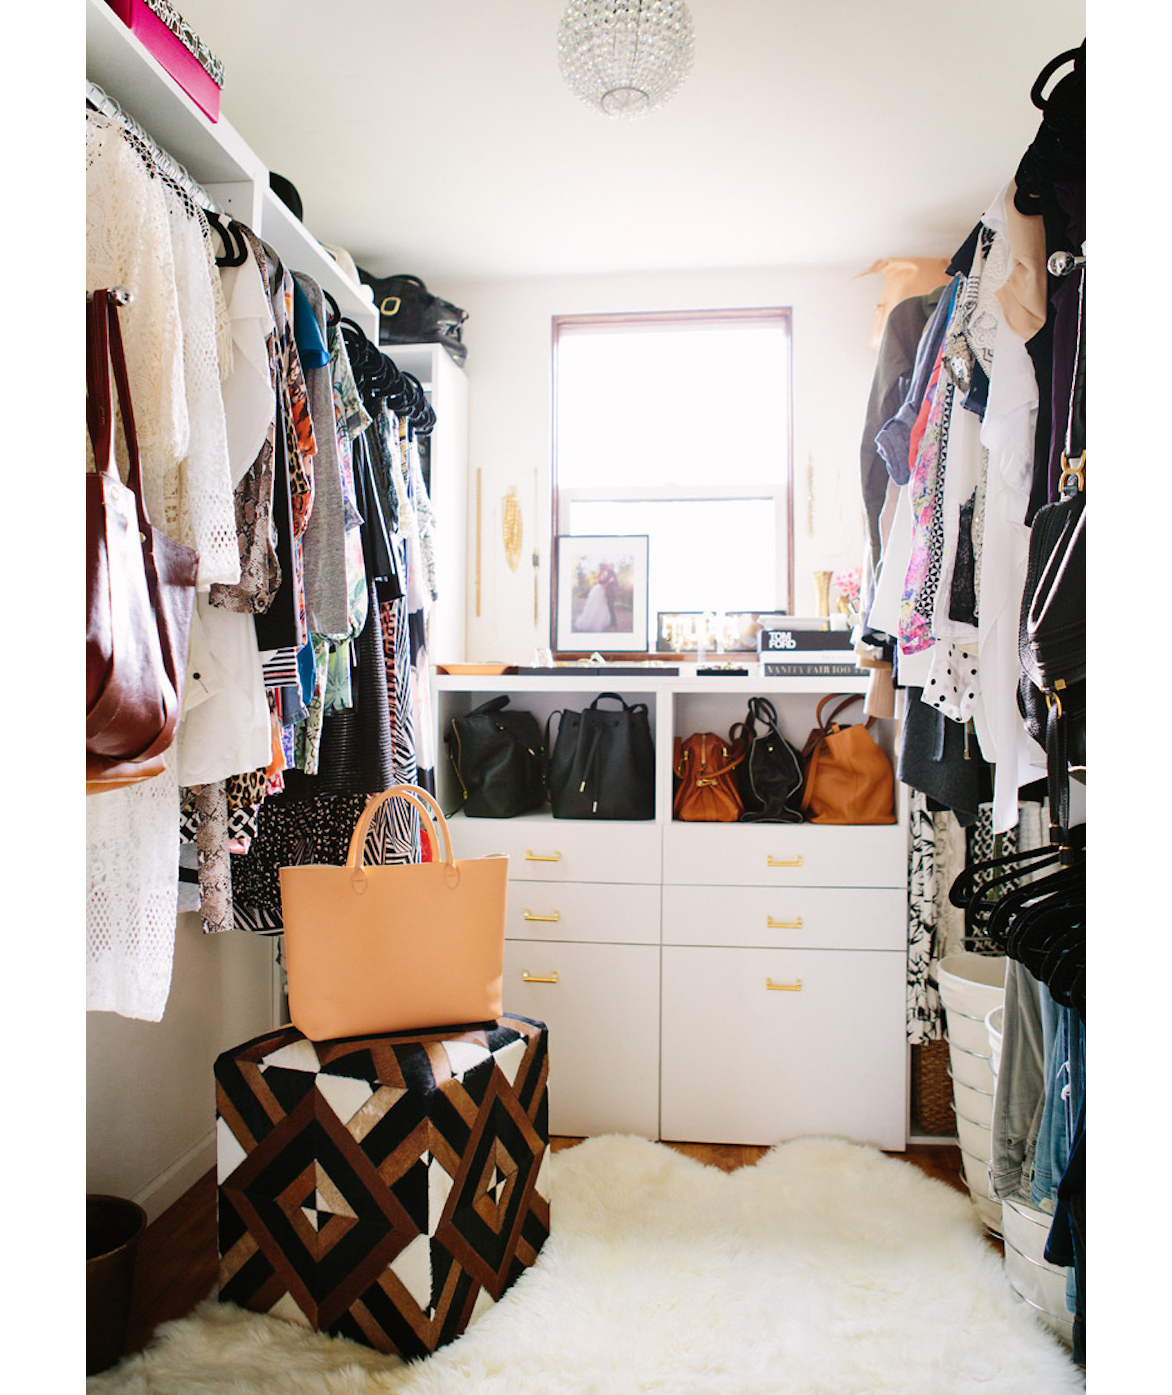 House in Hills closet after